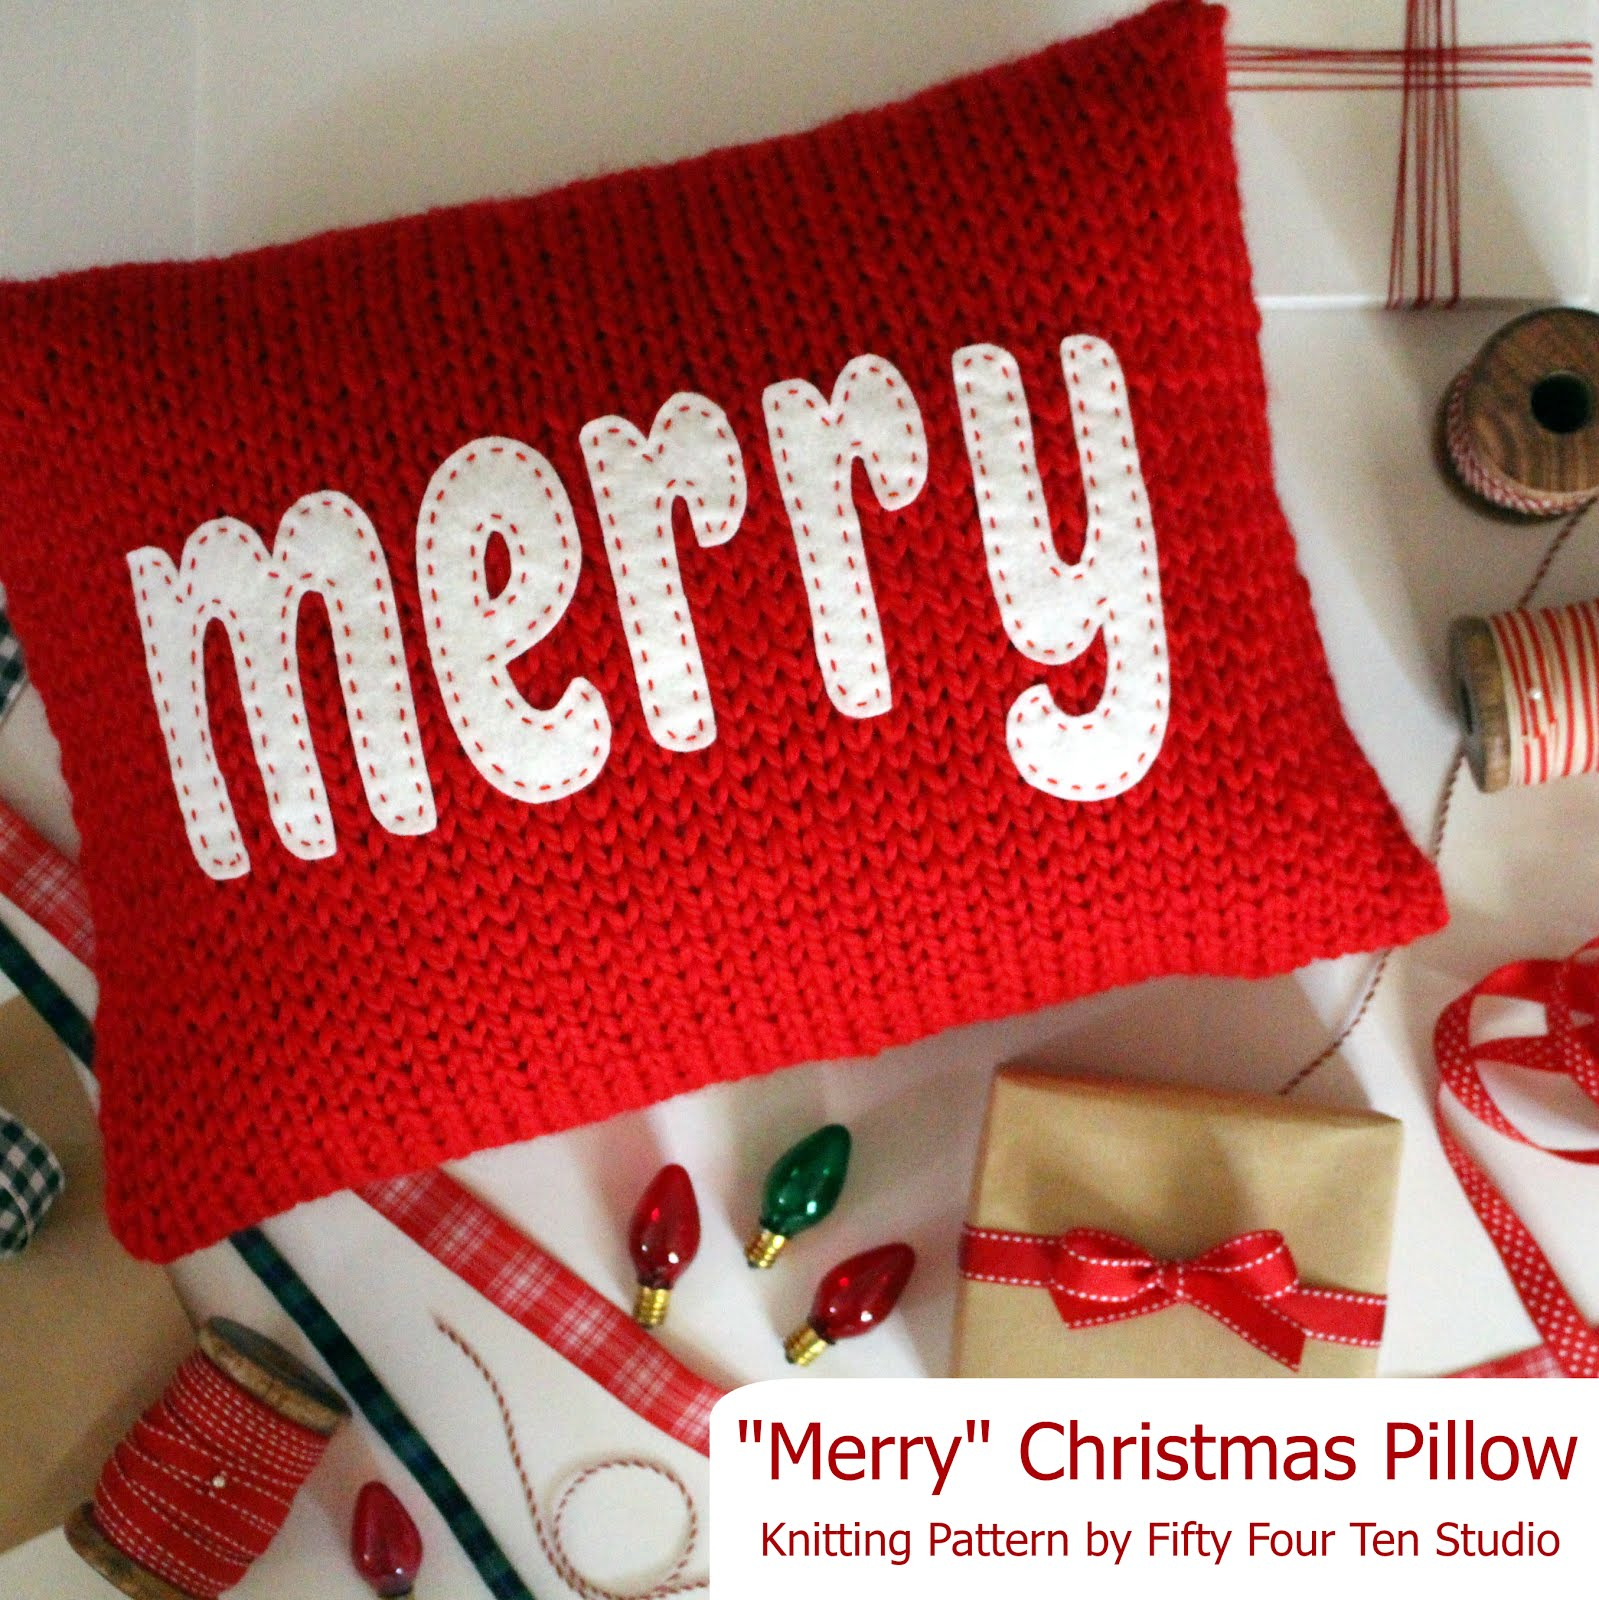 Merry & Cheers Pillows